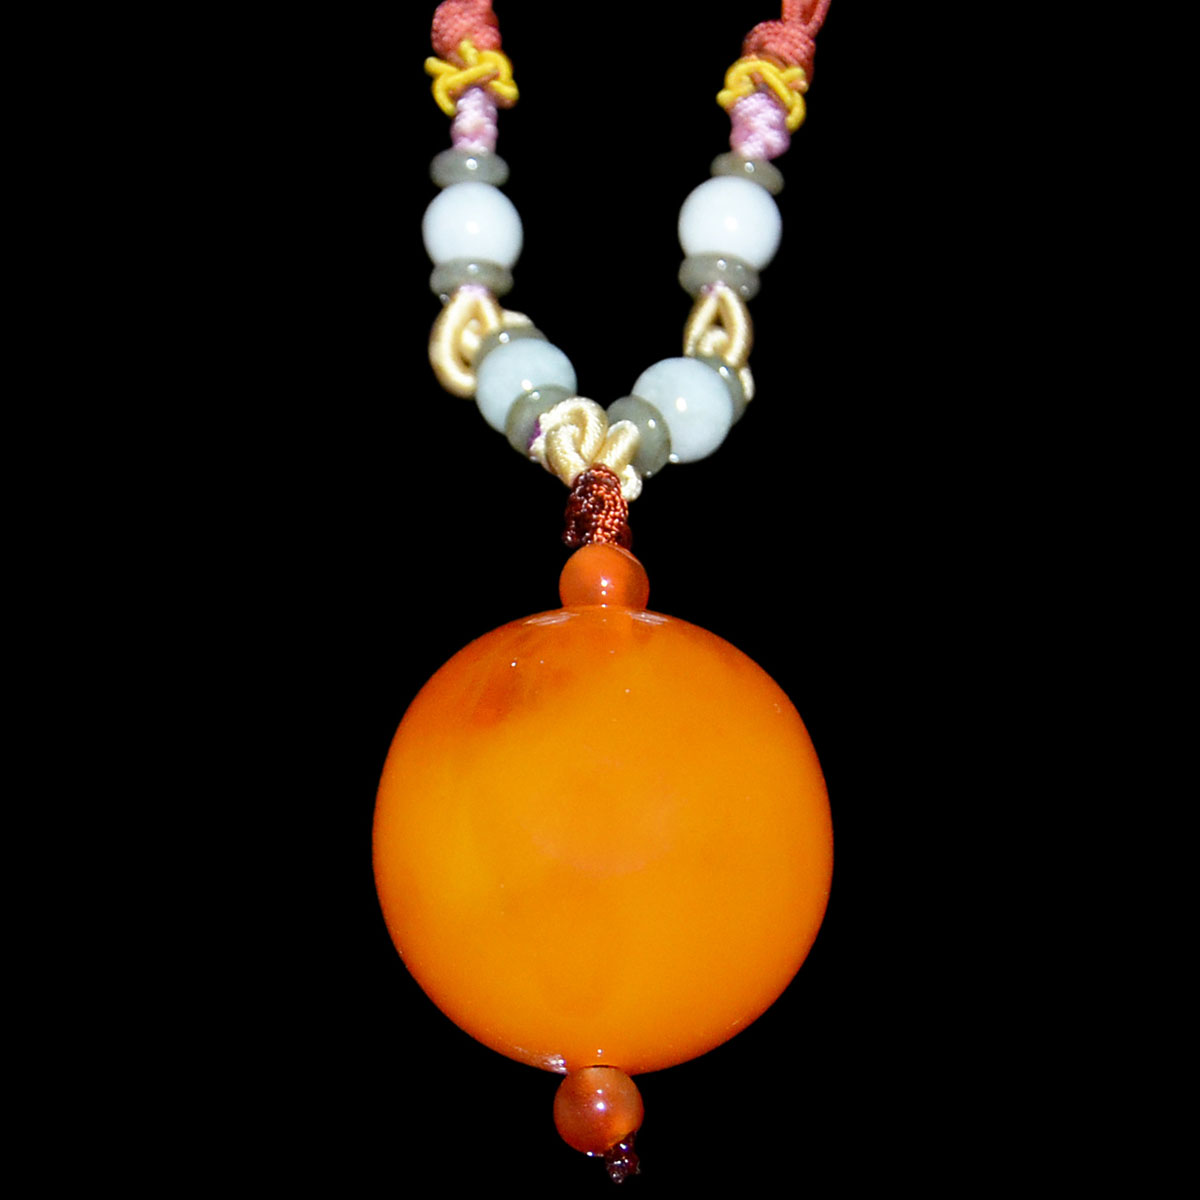 Lot 22 - 西藏-朝珠圓蜜蠟項飾連珠鏈 Tibetan Beeswax Amber Bead Pendant Necklace. Diameter: 1¼ in (3.2 cm)  Weight: 29 g.